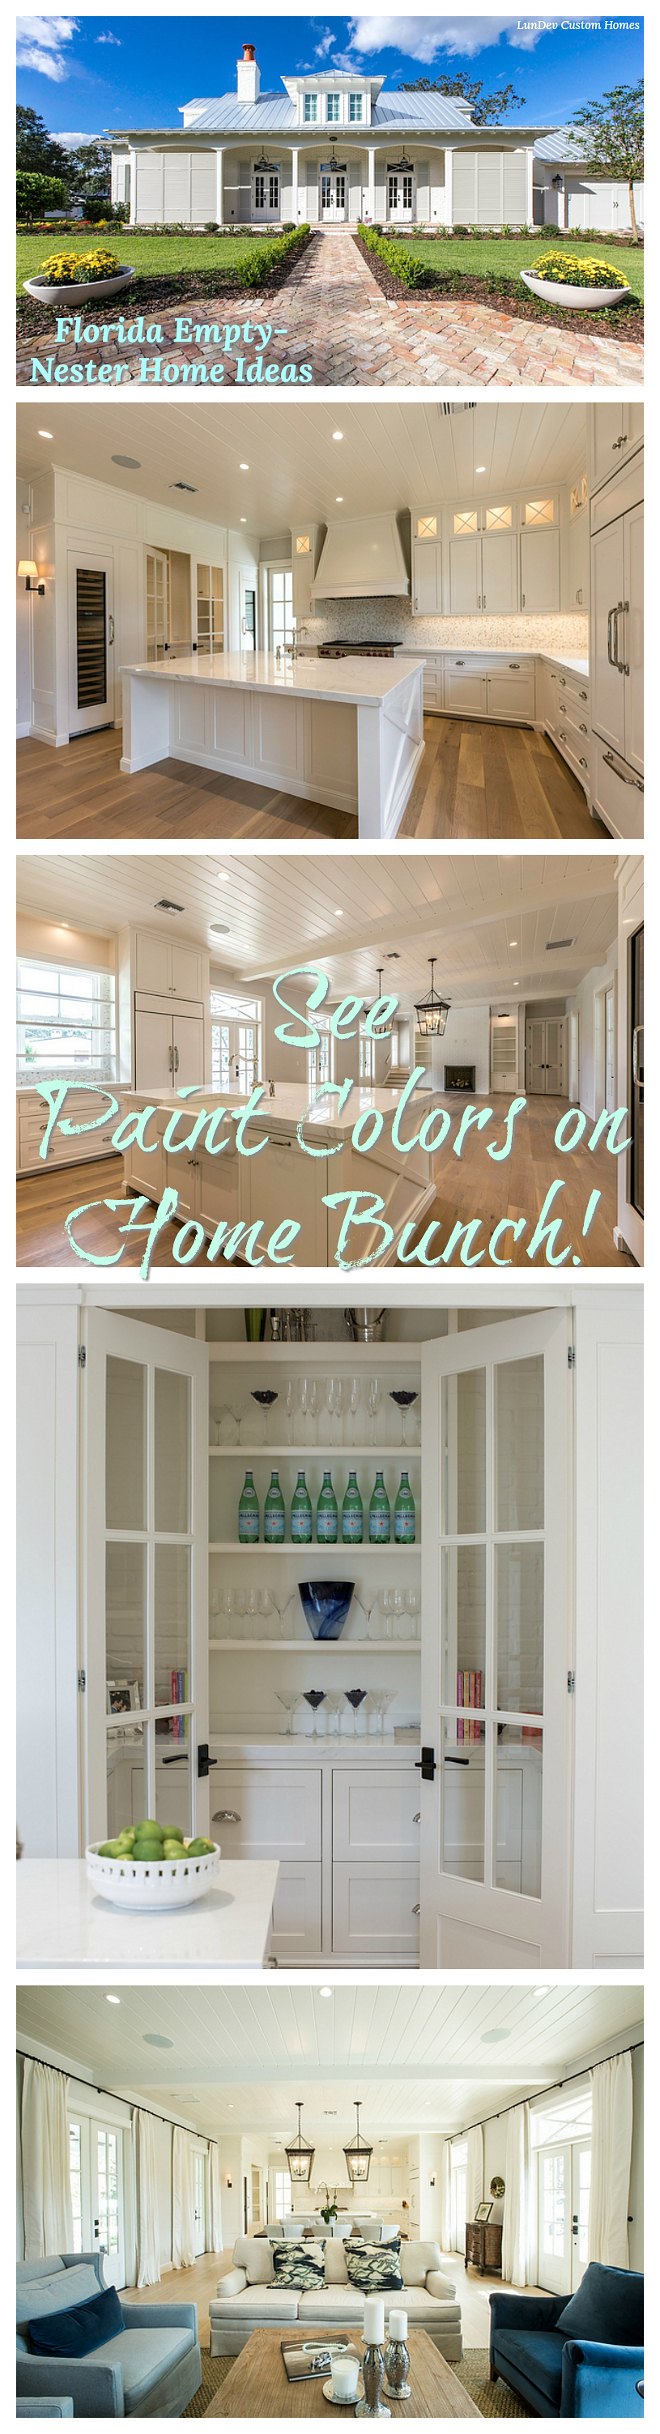 Florida Empty-Nester Home Ideas Florida Empty-Nester Home Paint Colors Florida Empty-Nester Home Interiors Florida Empty-Nester Home Plan Florida Empty-Nester Home Floor Plan #FloridaEmptyNesterHome #Florida #EmptyNesterHomeIdeas #EmptyNester #HomeIdeas